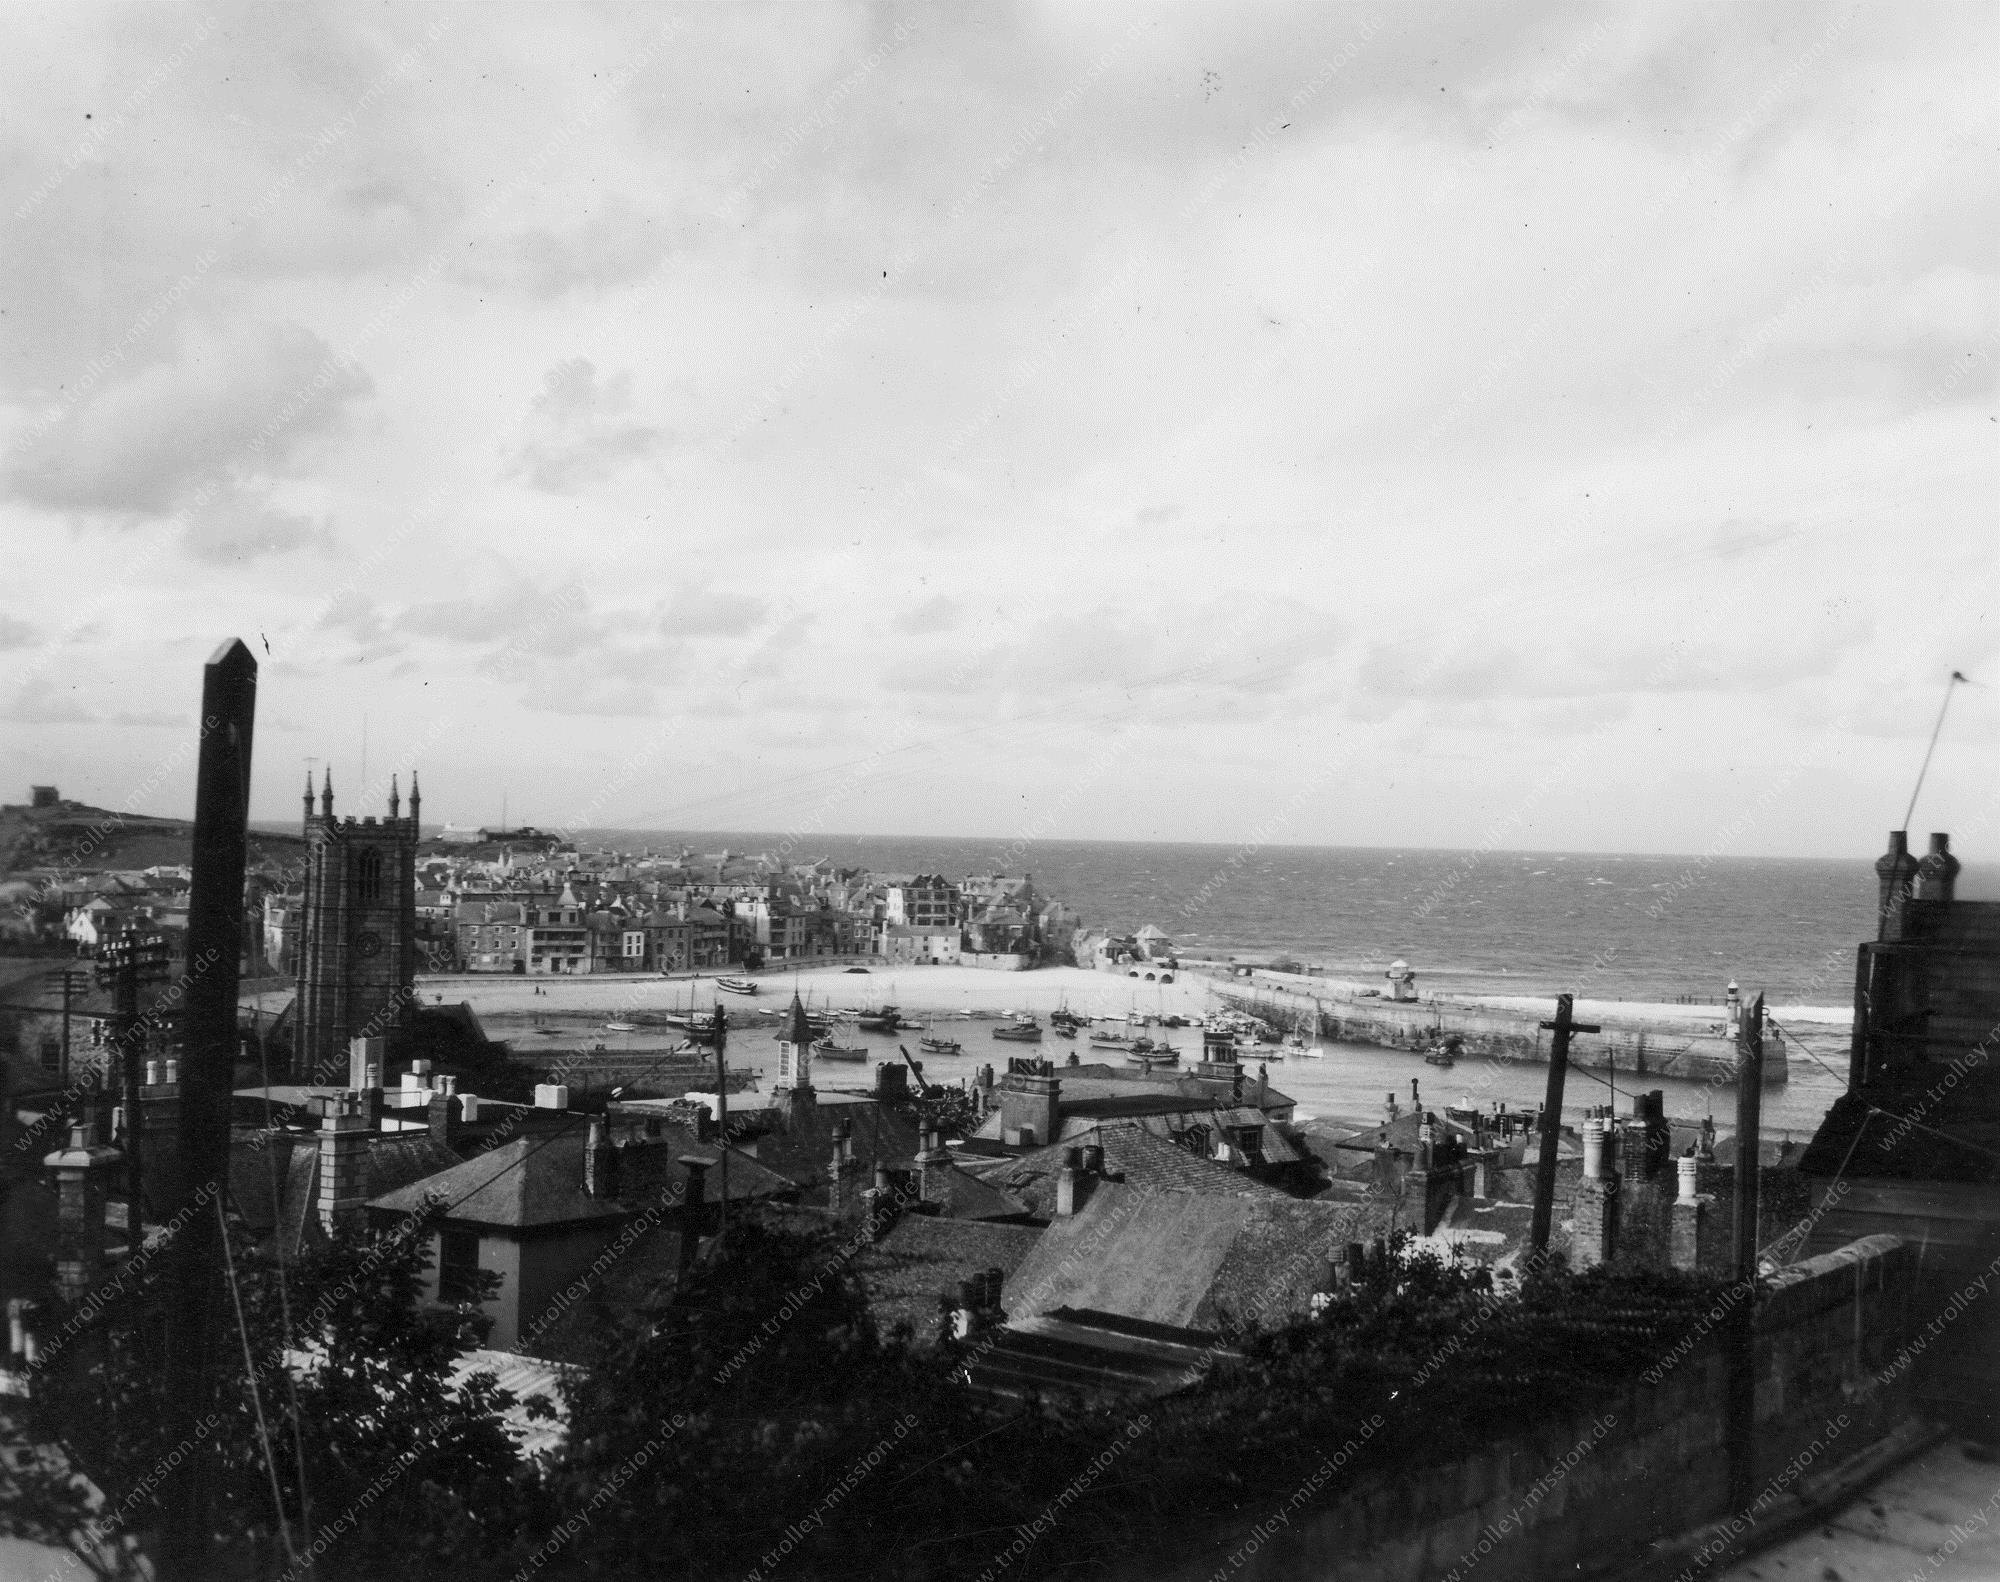 St Ives - Sea View Terrace - Photo of Second World War - Cornwall England